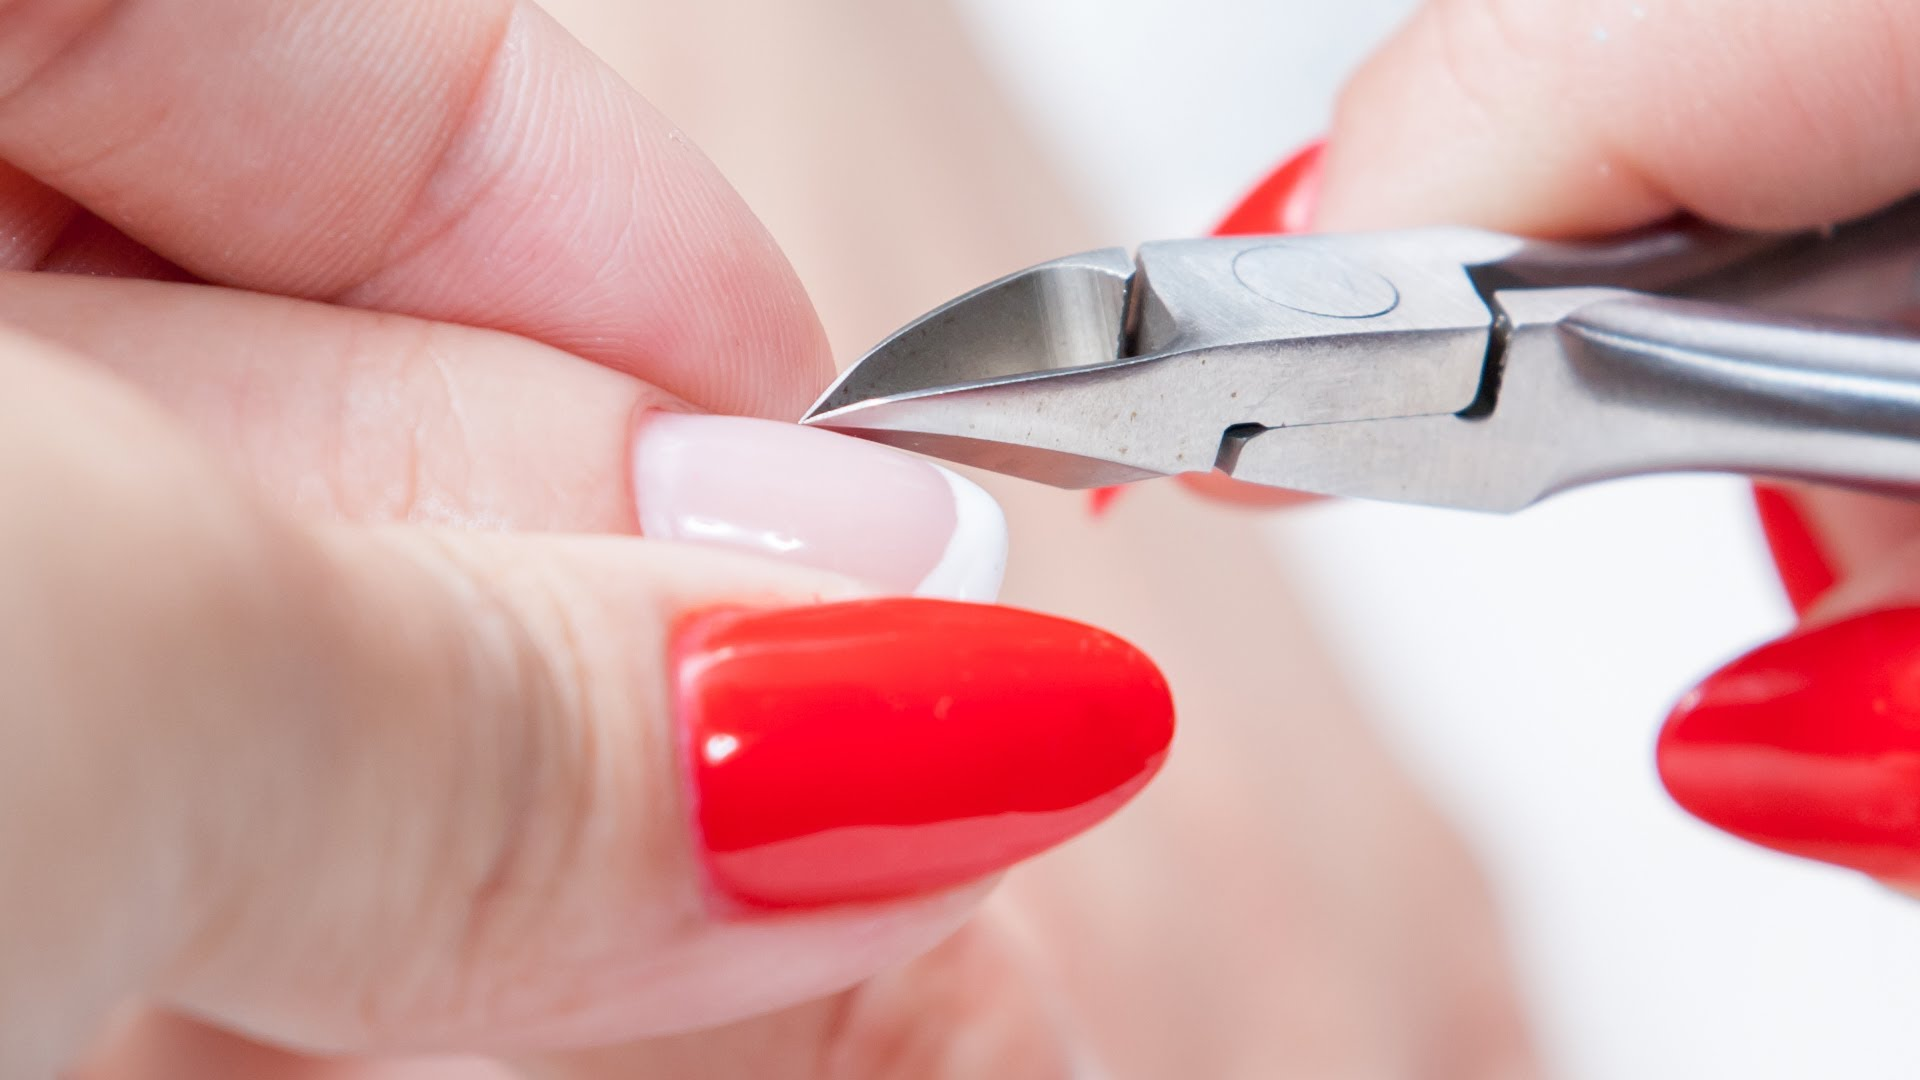 How to Use Cuticle Nippers - Your Beauty 411